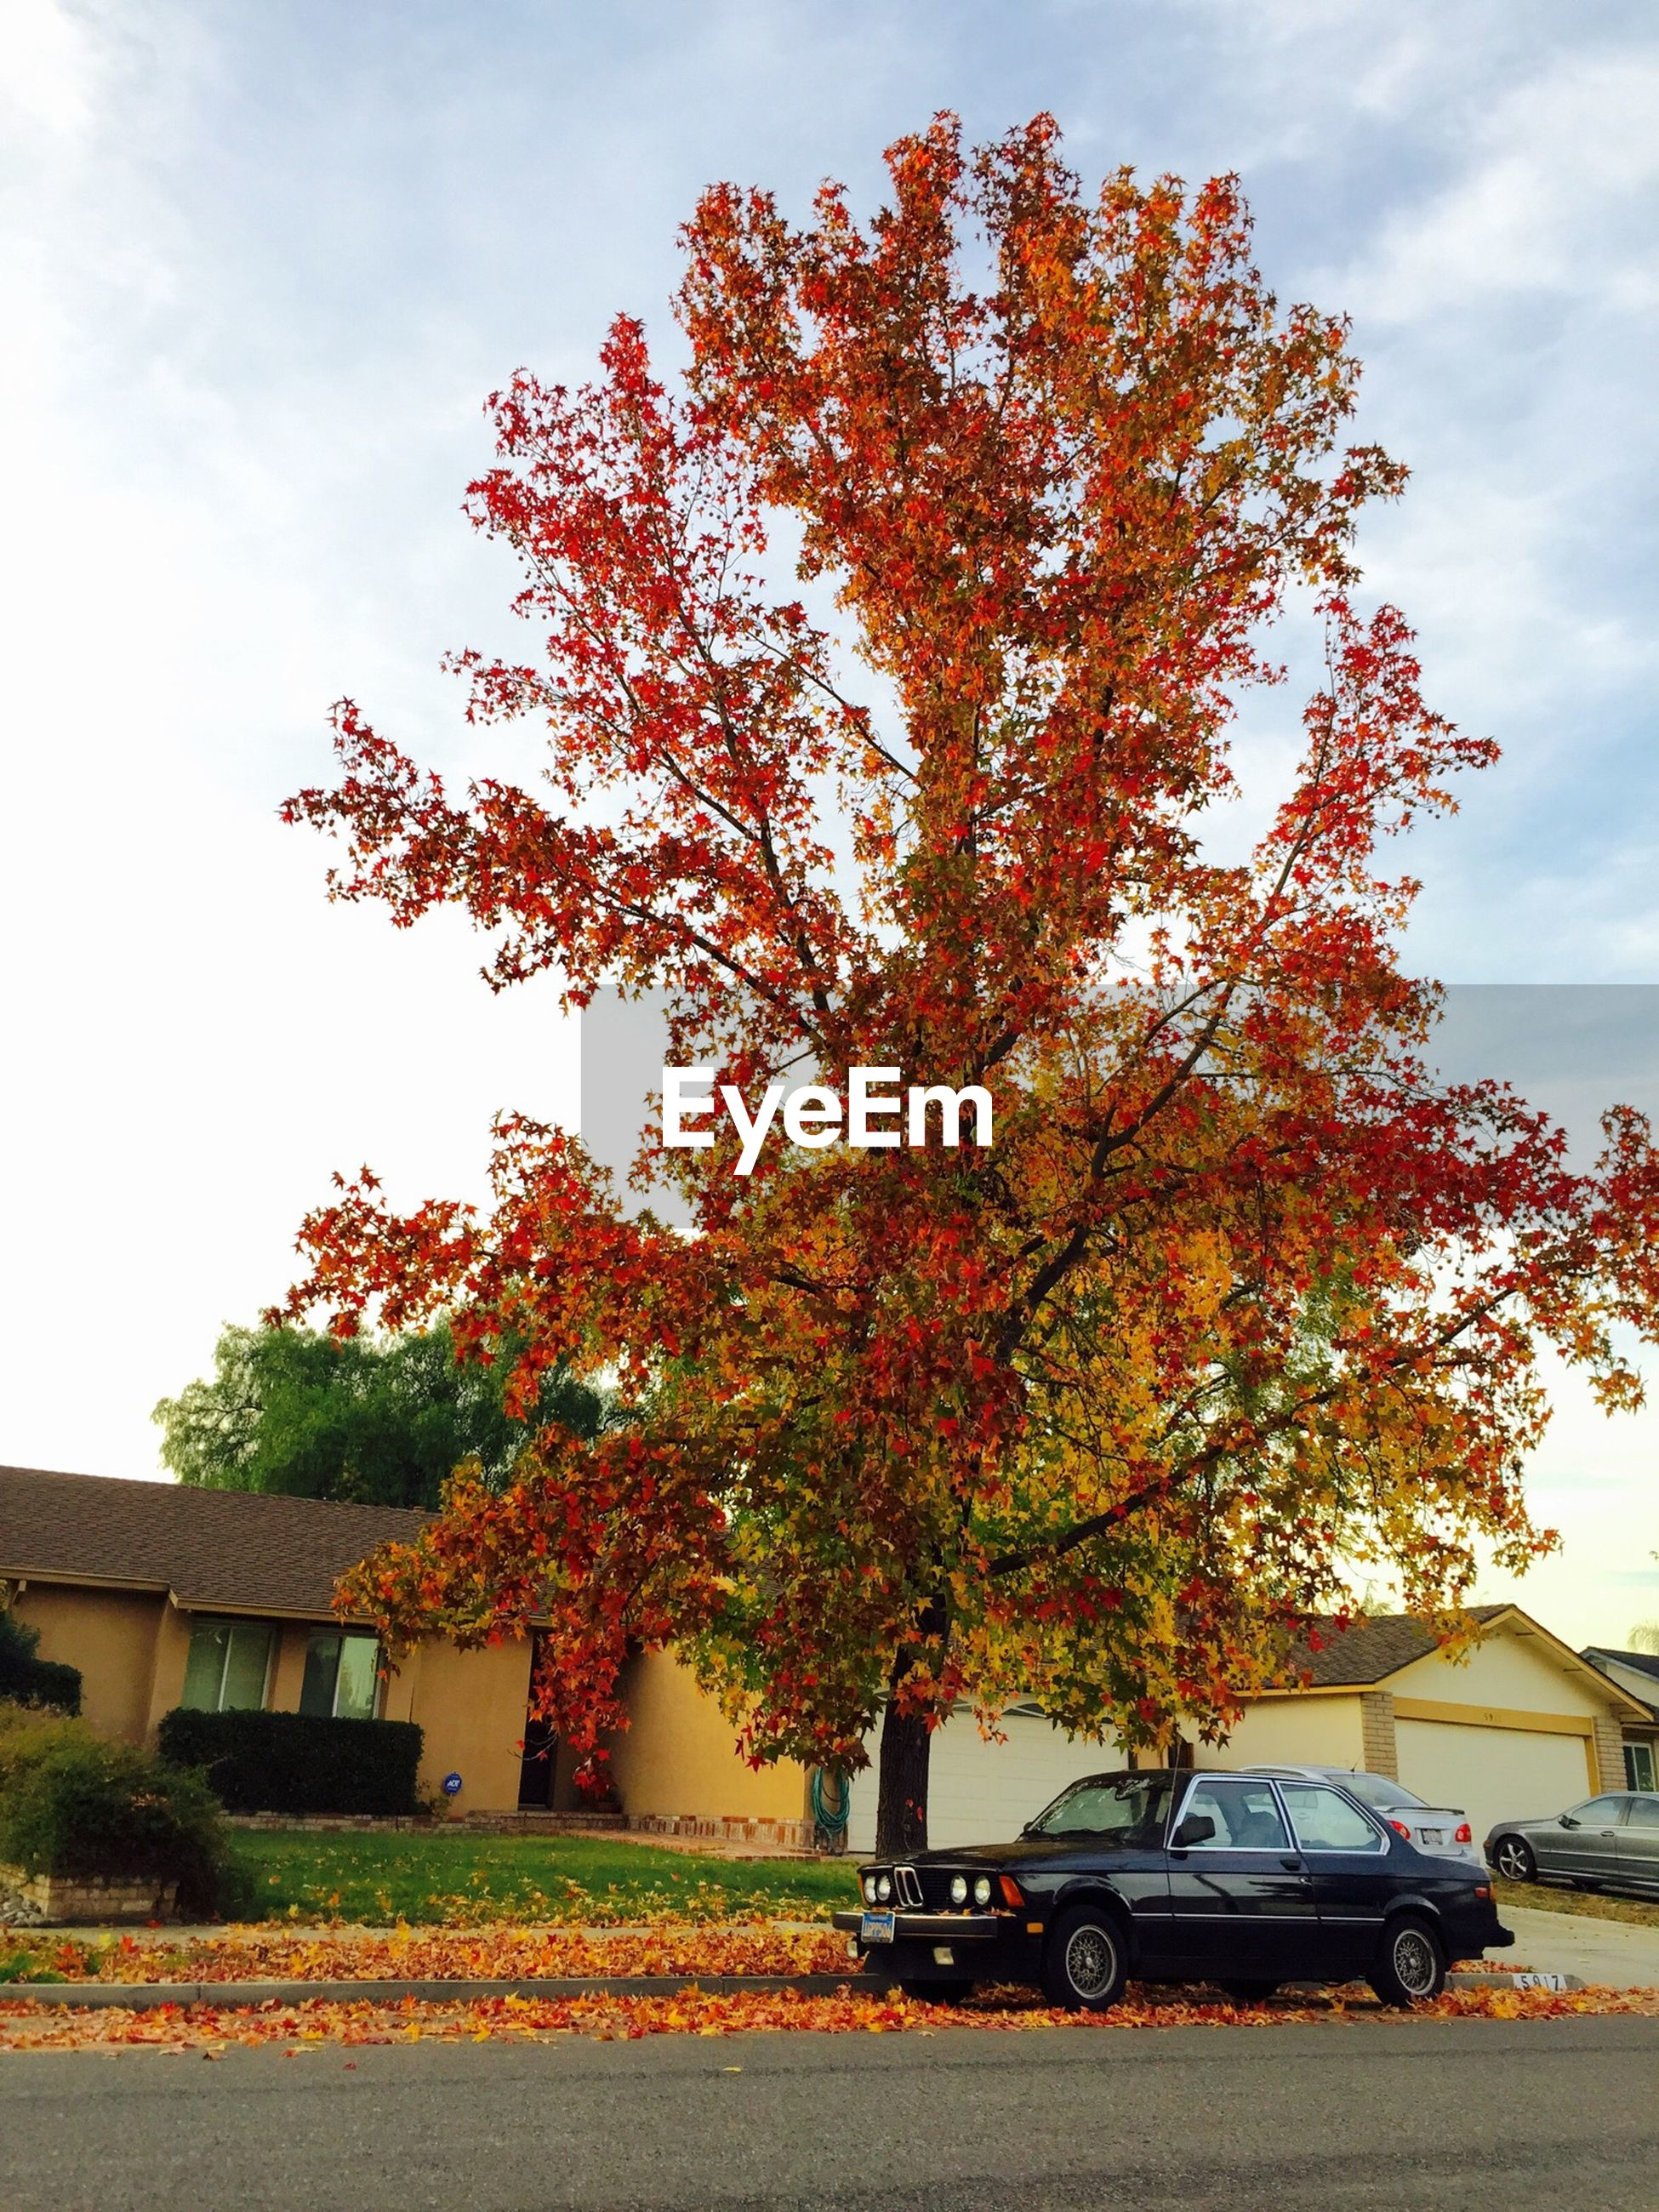 Autumnal tree and car in front of houses